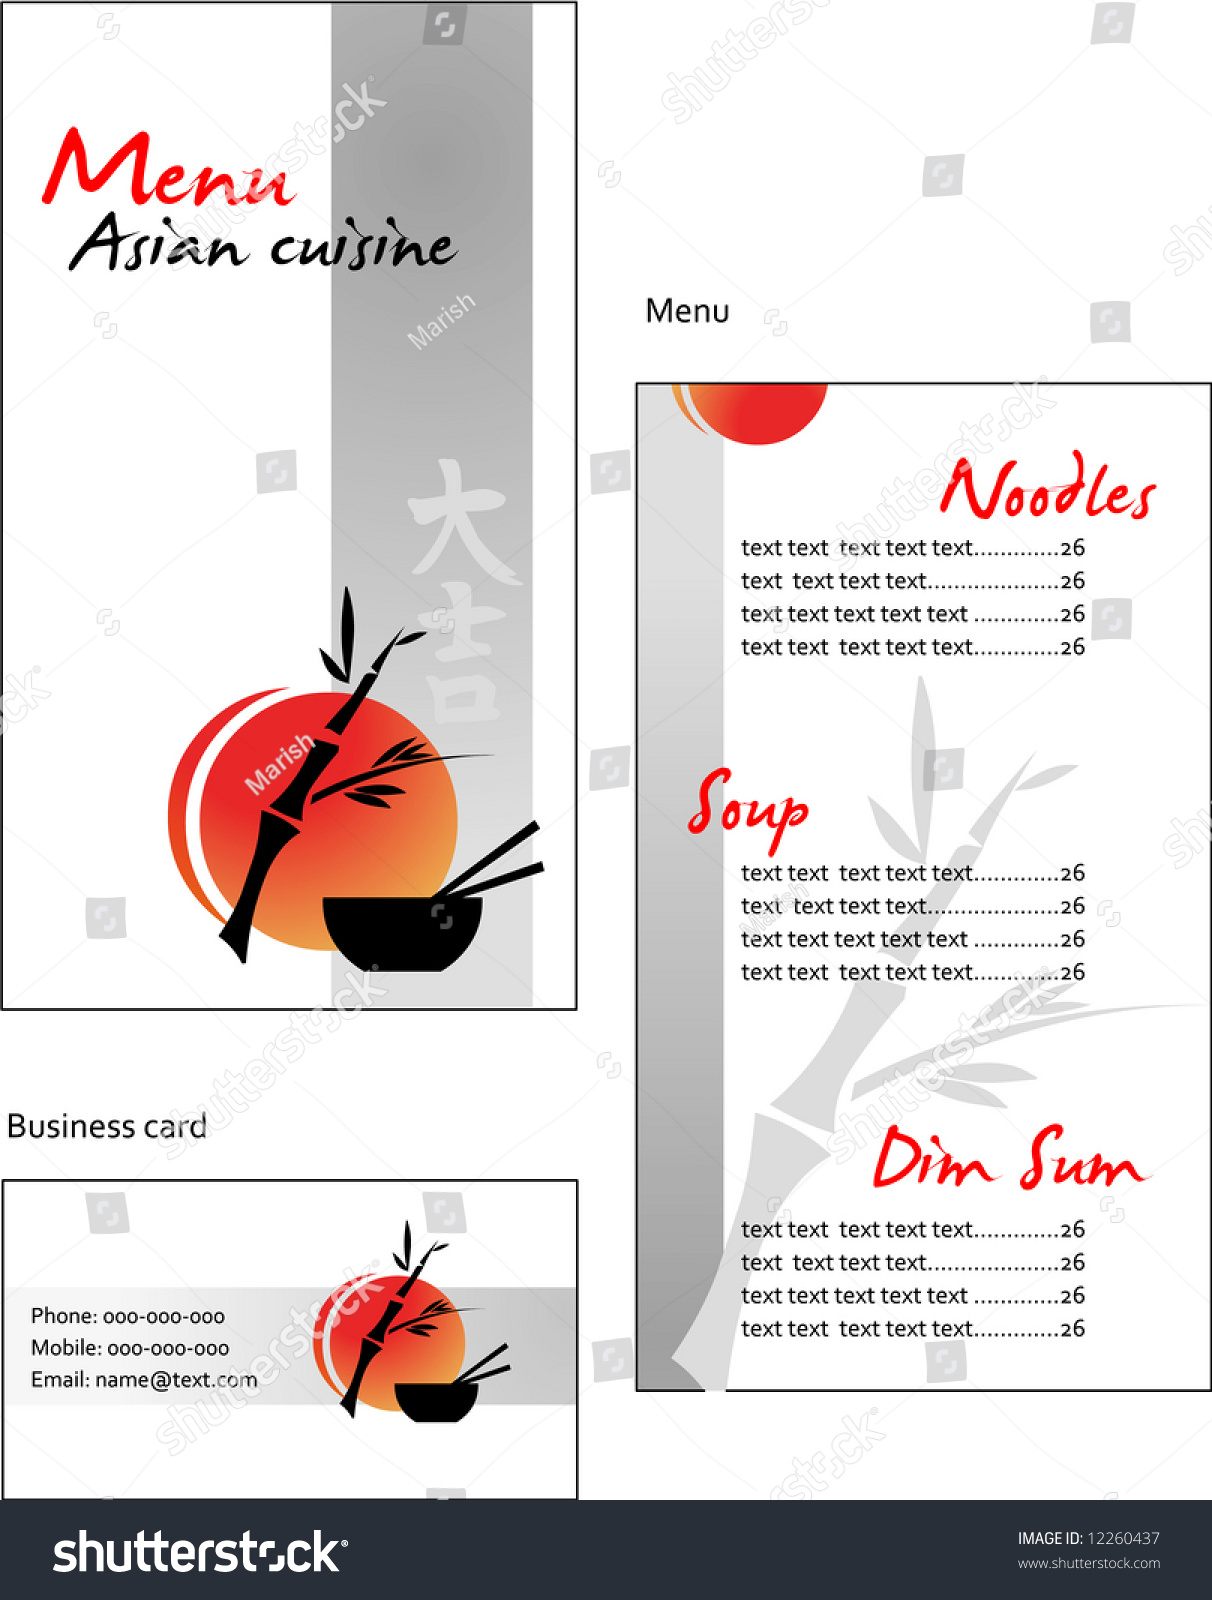 Template Designs Menu Business Card Asian Stock Vector 12260437 ...